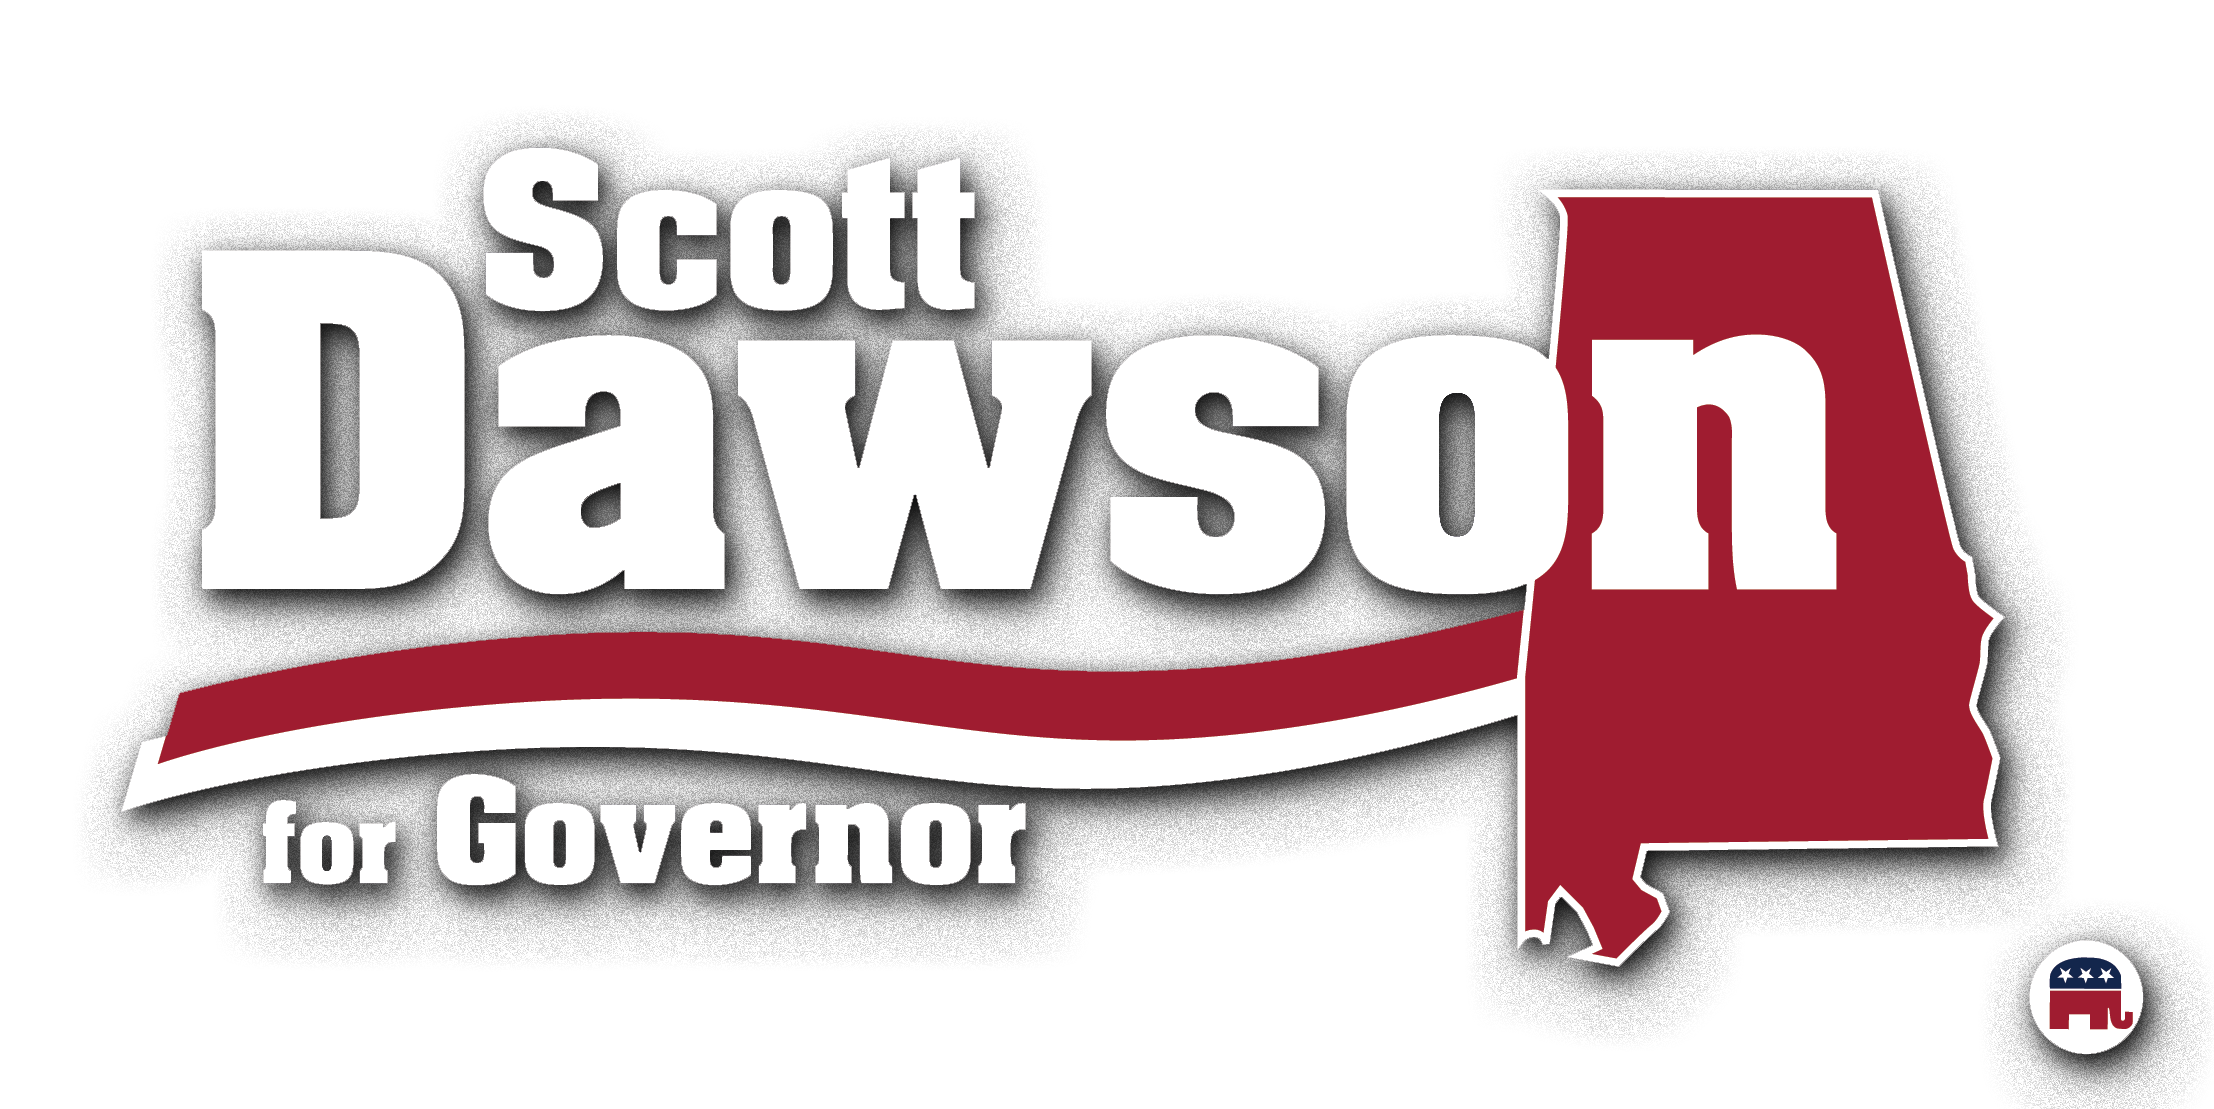 Scott Dawson - Republican for Governor, Alabama